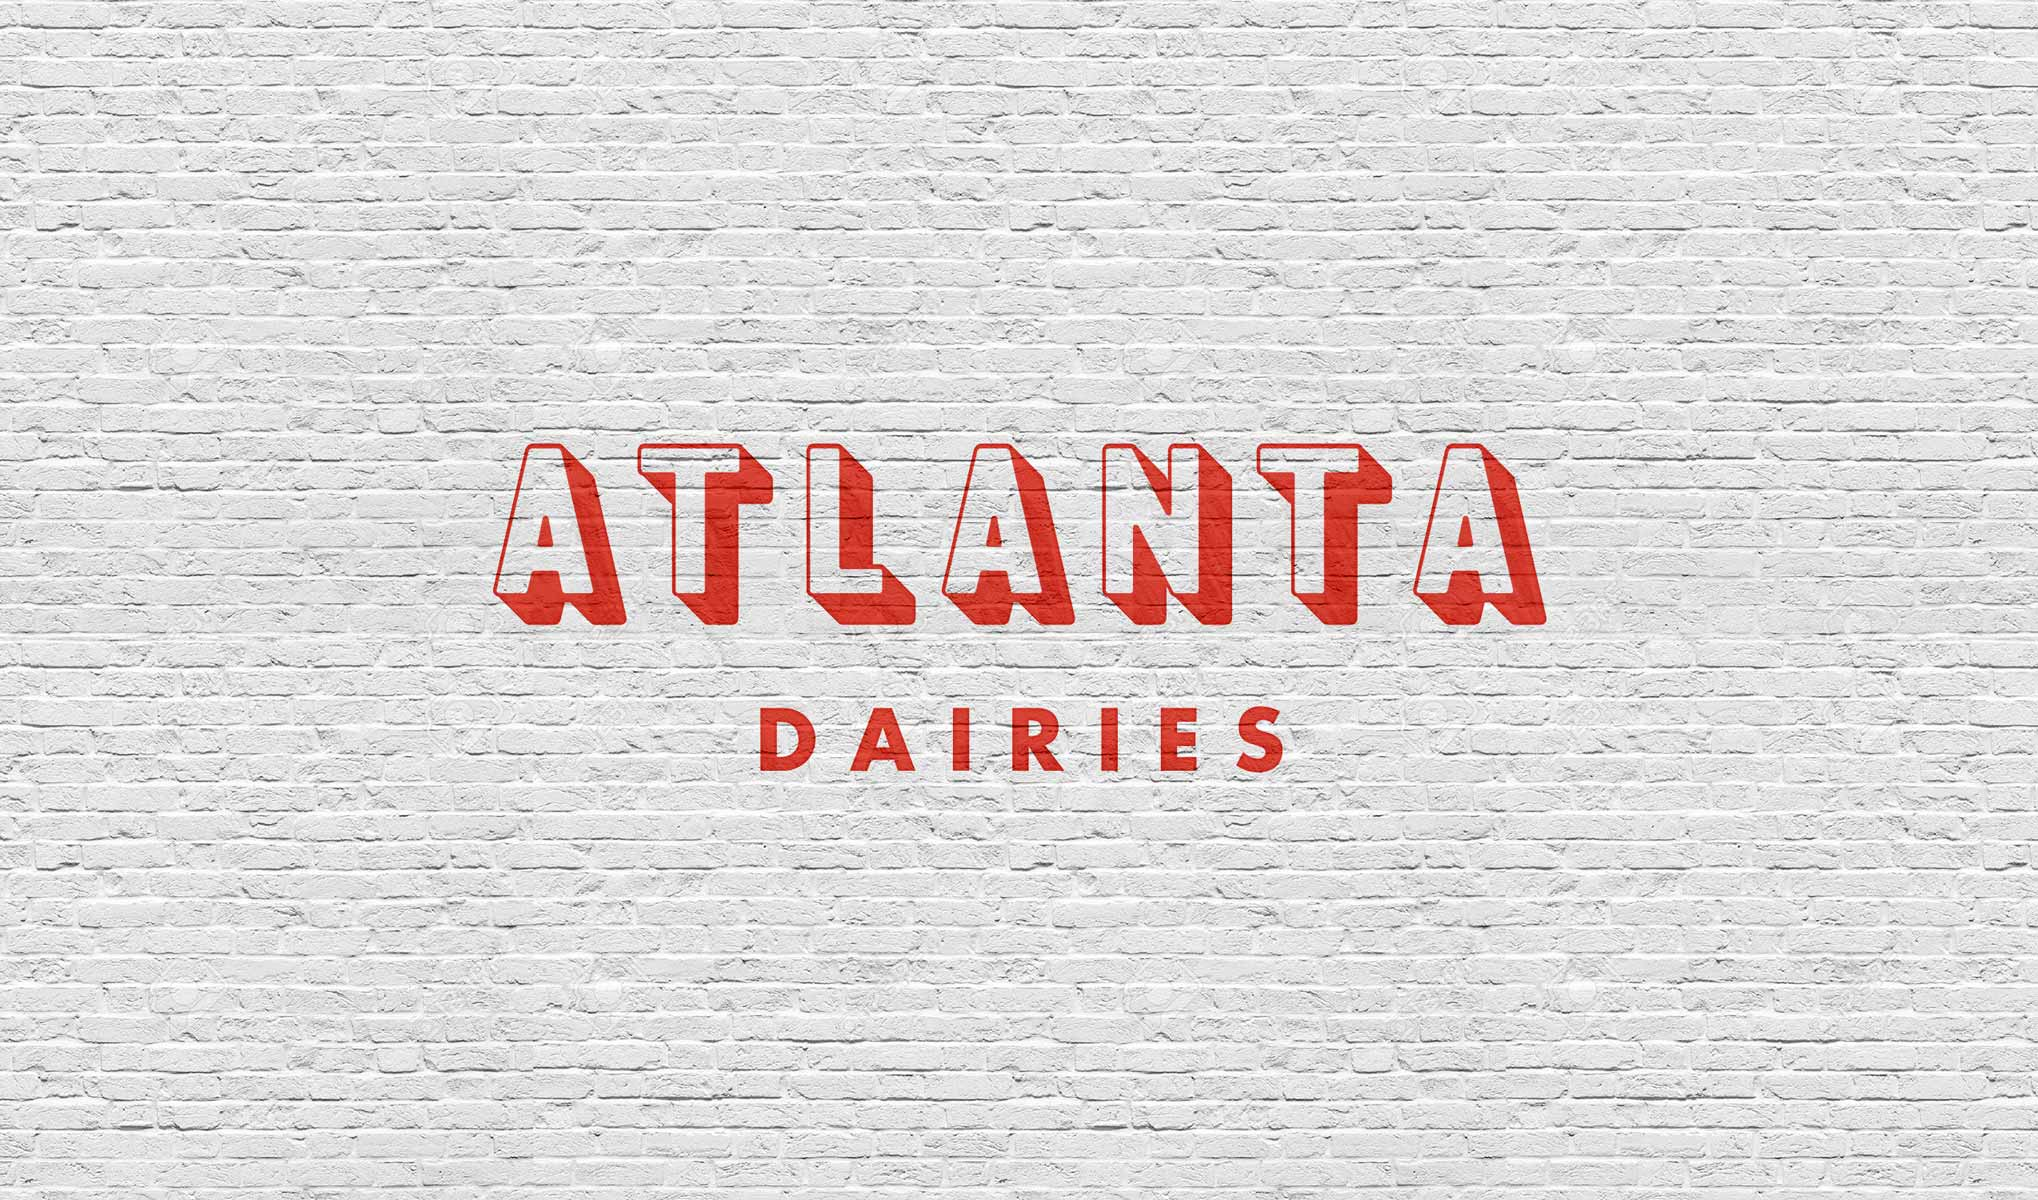 Atlanta Dairies